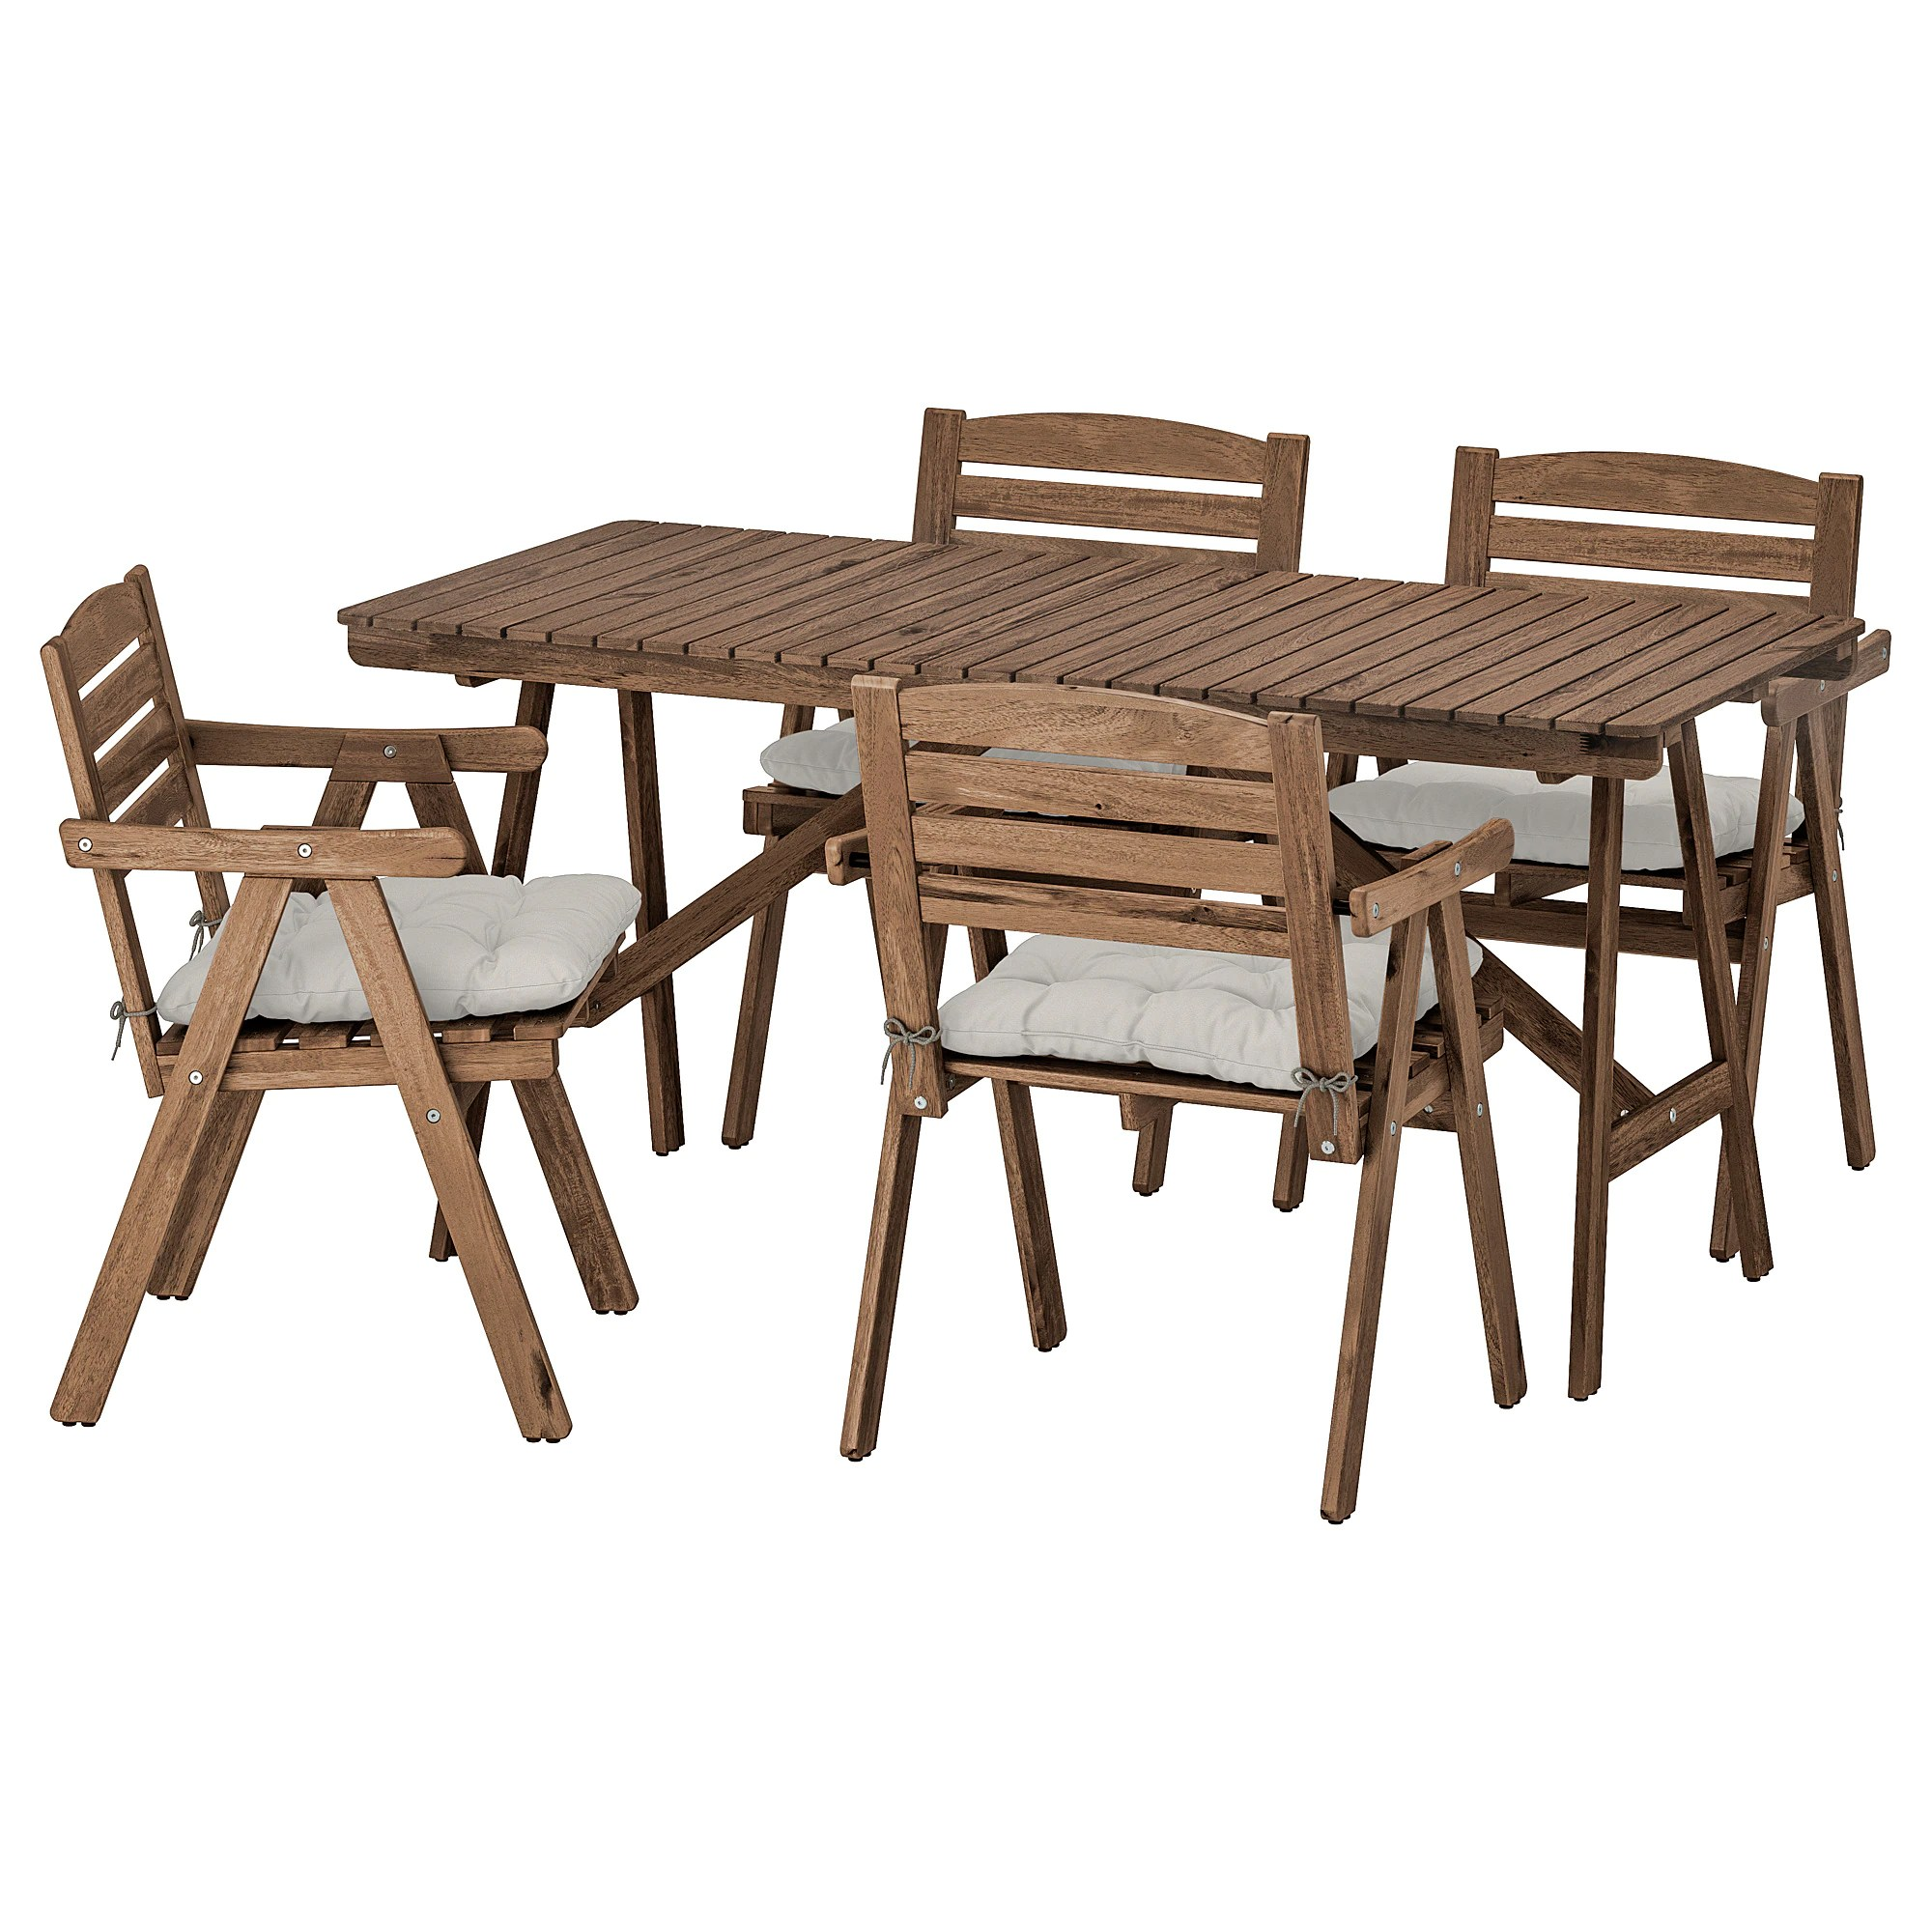 Falholmen Table4 Chairs W Armrests Outdoor Grey Brown